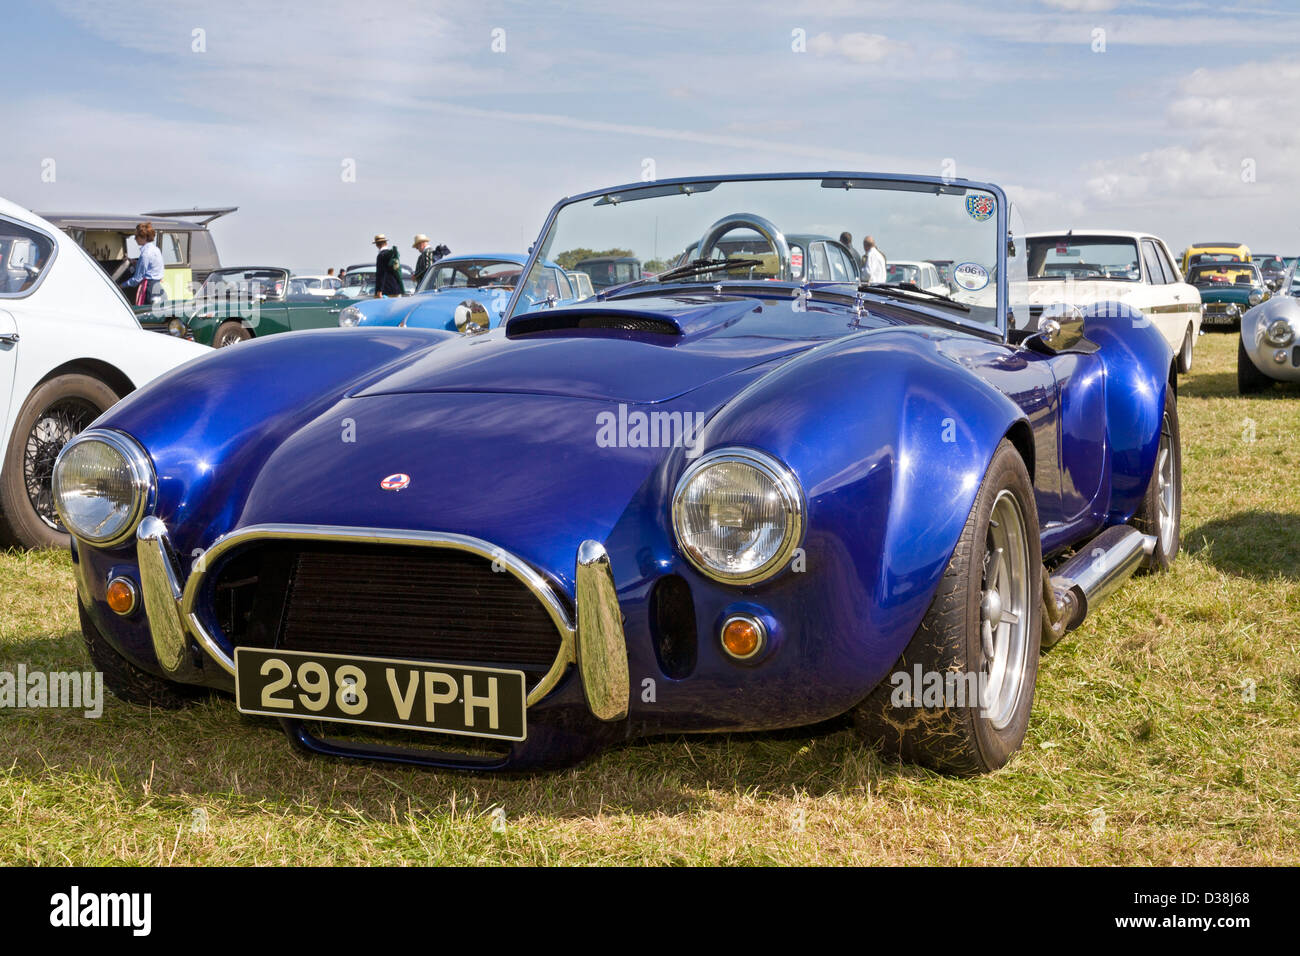 jaguar shelby cobra 427 kit car 298vph 5 7 litre v8 in the classic stock photo royalty free. Black Bedroom Furniture Sets. Home Design Ideas